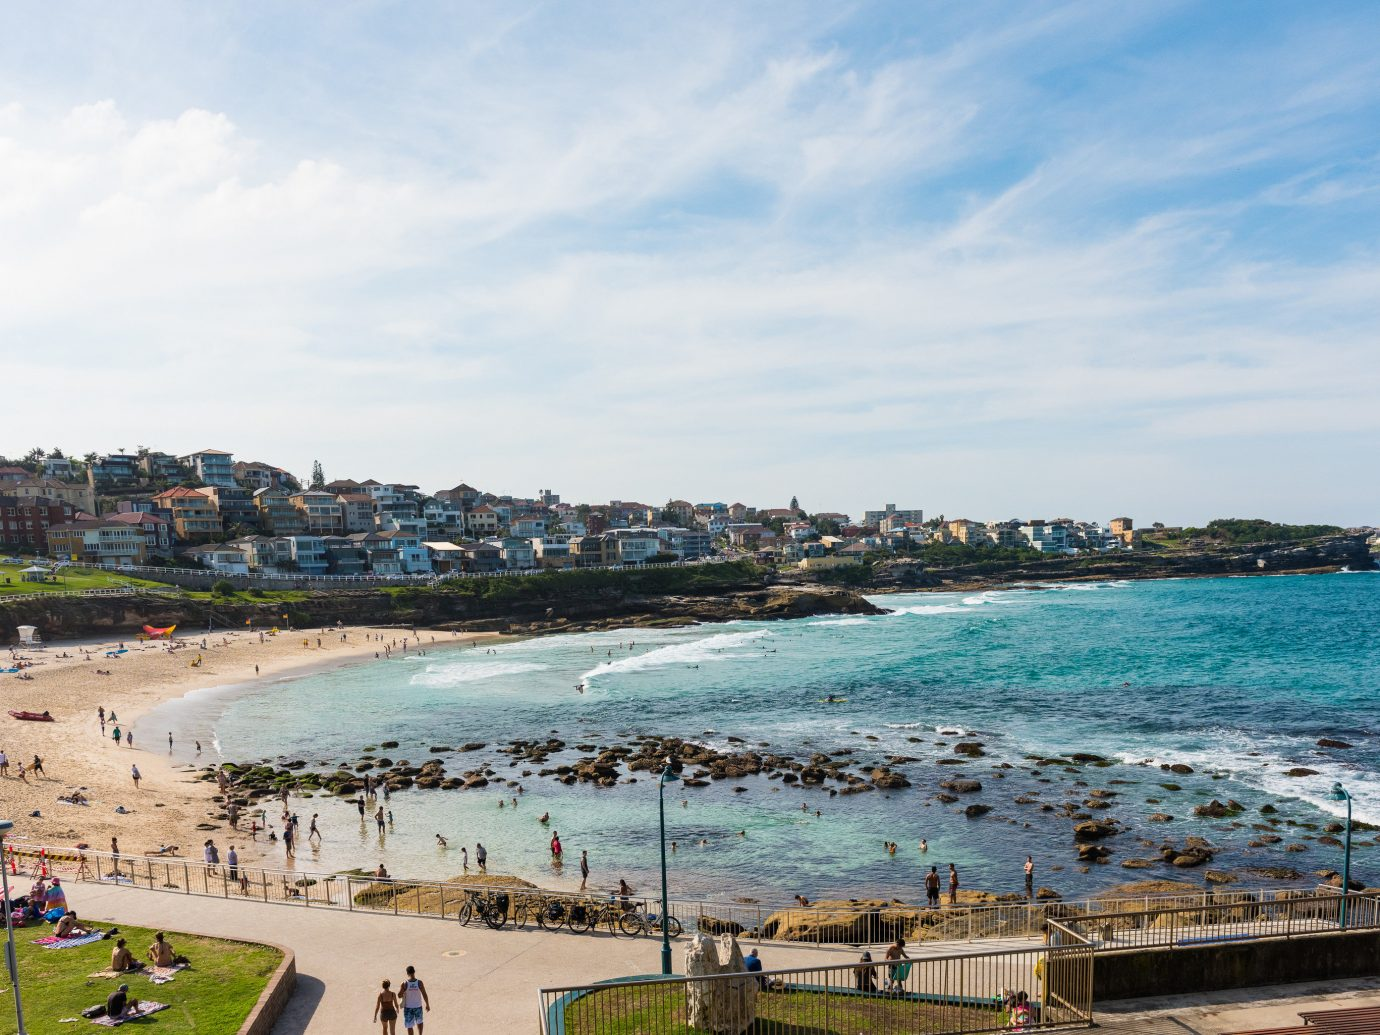 Outdoors + Adventure Sydney sky outdoor Sea water Coast Beach body of water coastal and oceanic landforms shore Ocean bay tourism sand City cloud horizon people cape tree inlet vacation cove day